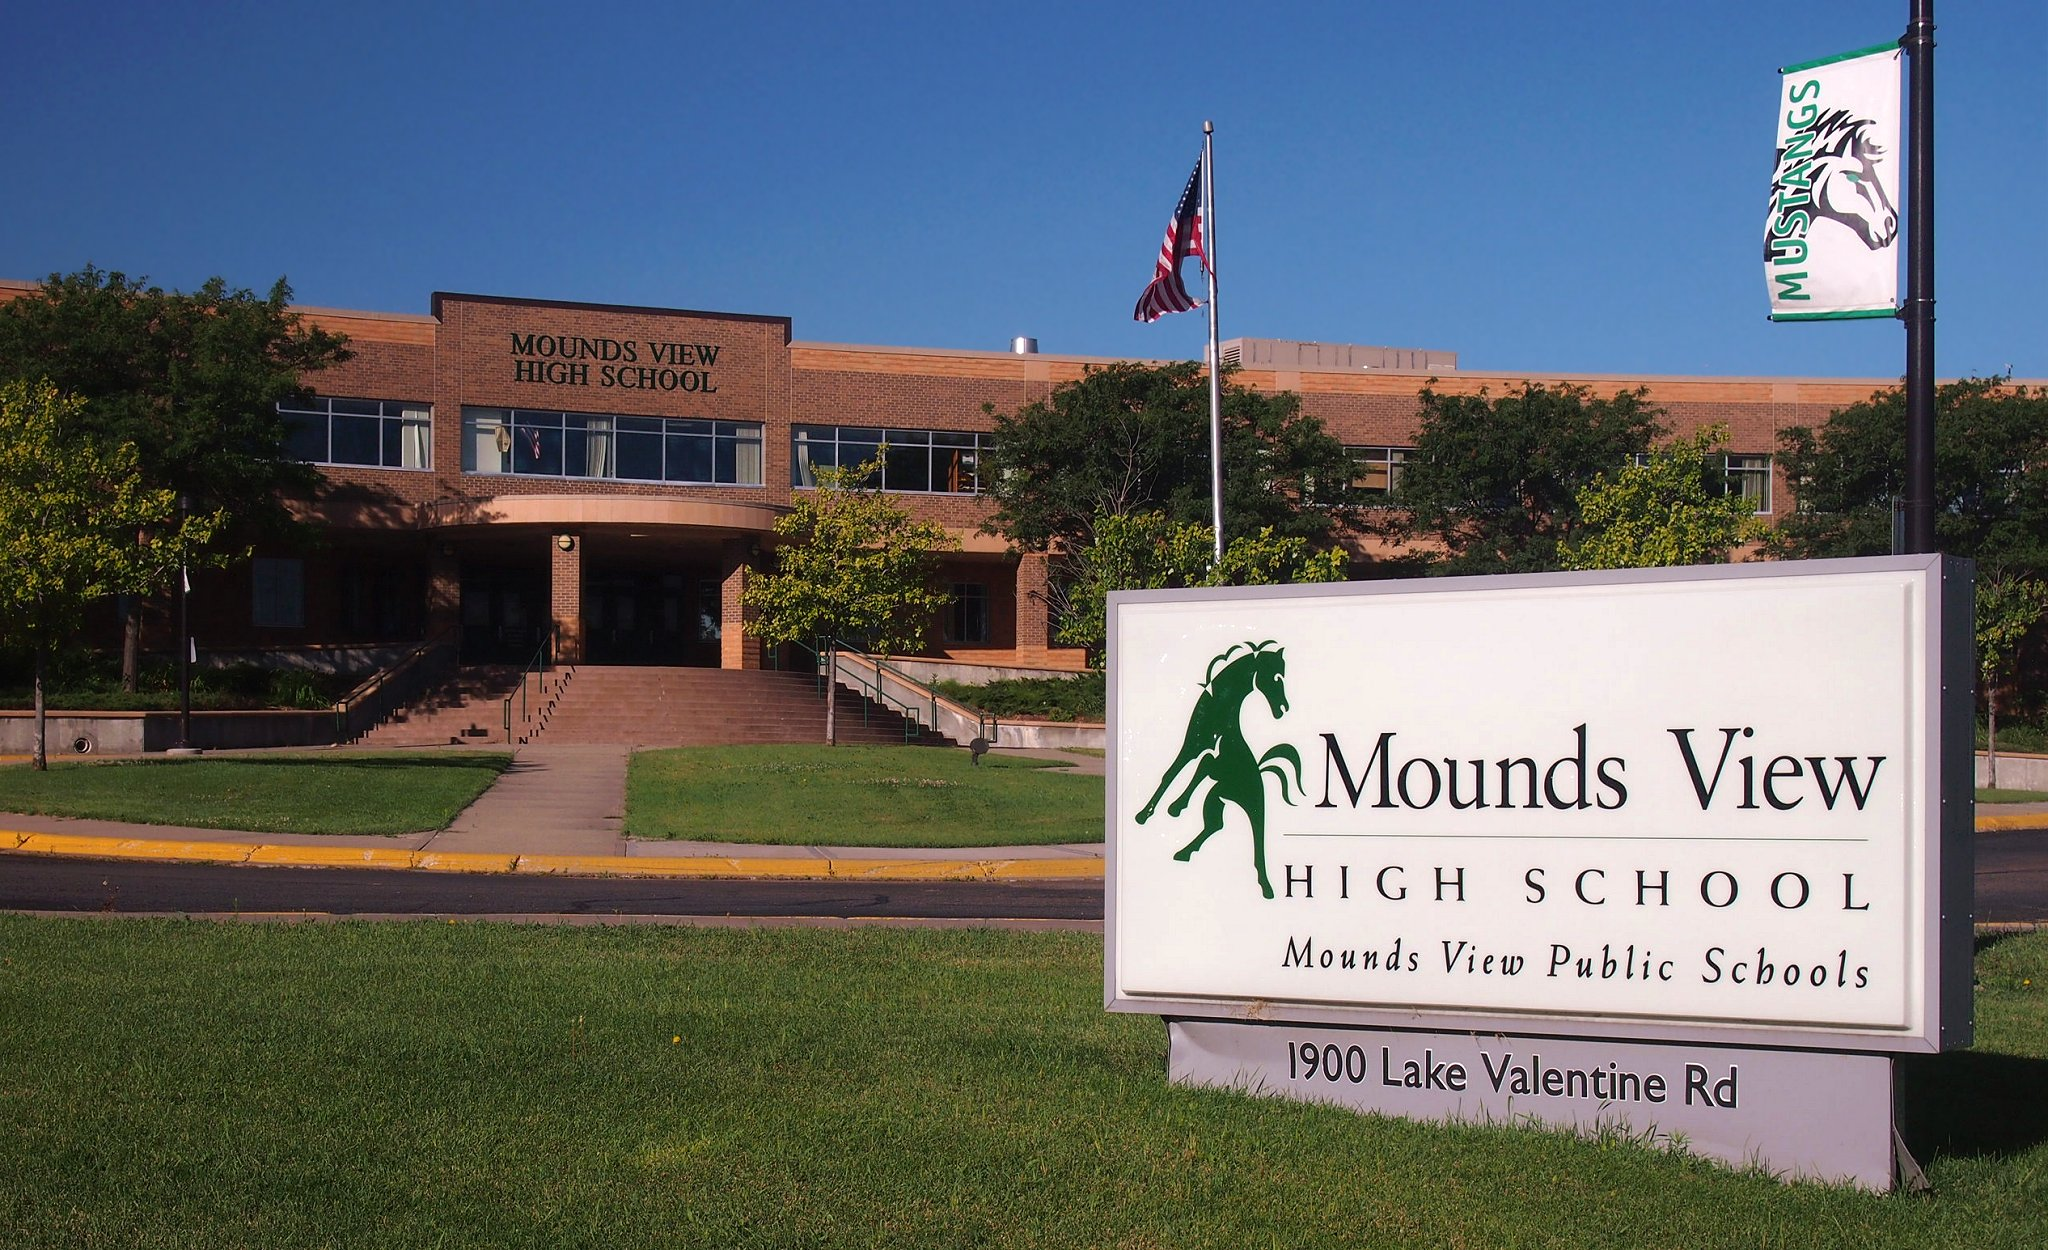 Mounds View School District Map File:Mounds View High School 01.   Wikimedia Commons